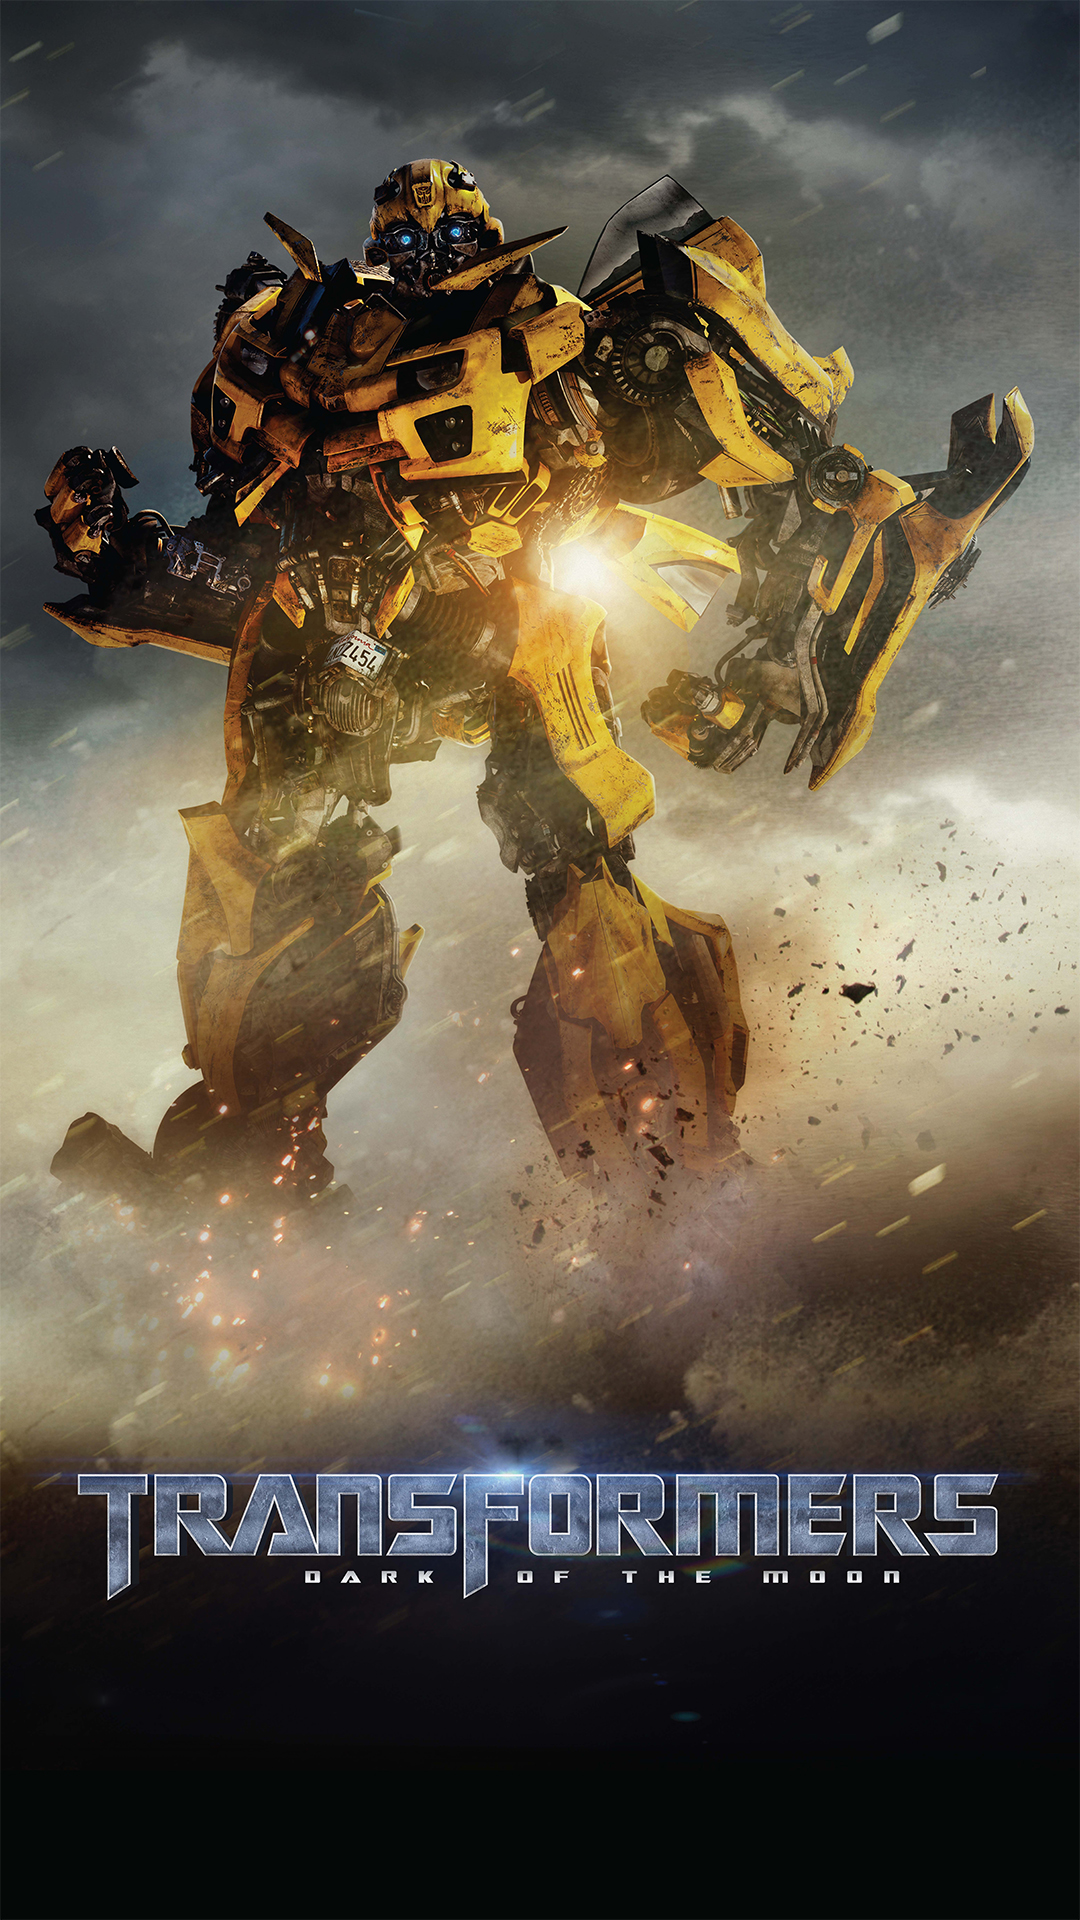 Transformer 4 Cars Wallpaper Transformers Bumblebee Best Htc One Wallpapers Free To